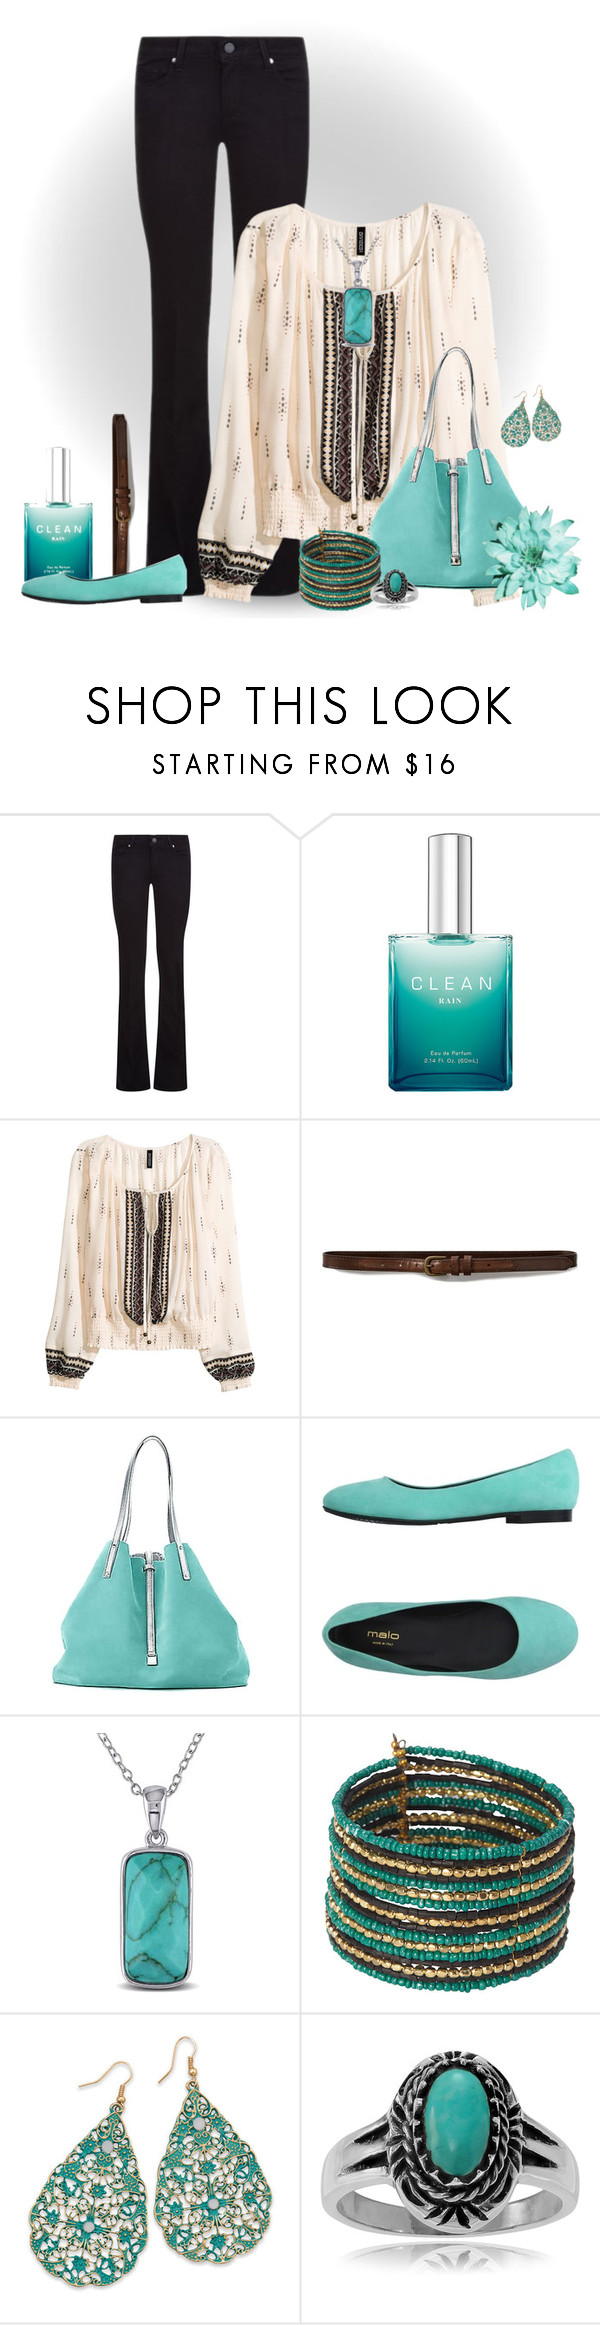 """""""Touch of Turquoise"""" by stileclassico ❤ liked on Polyvore featuring Paige Denim, CLEAN, Abercrombie & Fitch, Tiffany & Co., malo, Miadora, BillyTheTree, Journee Collection, casual and turquoise"""